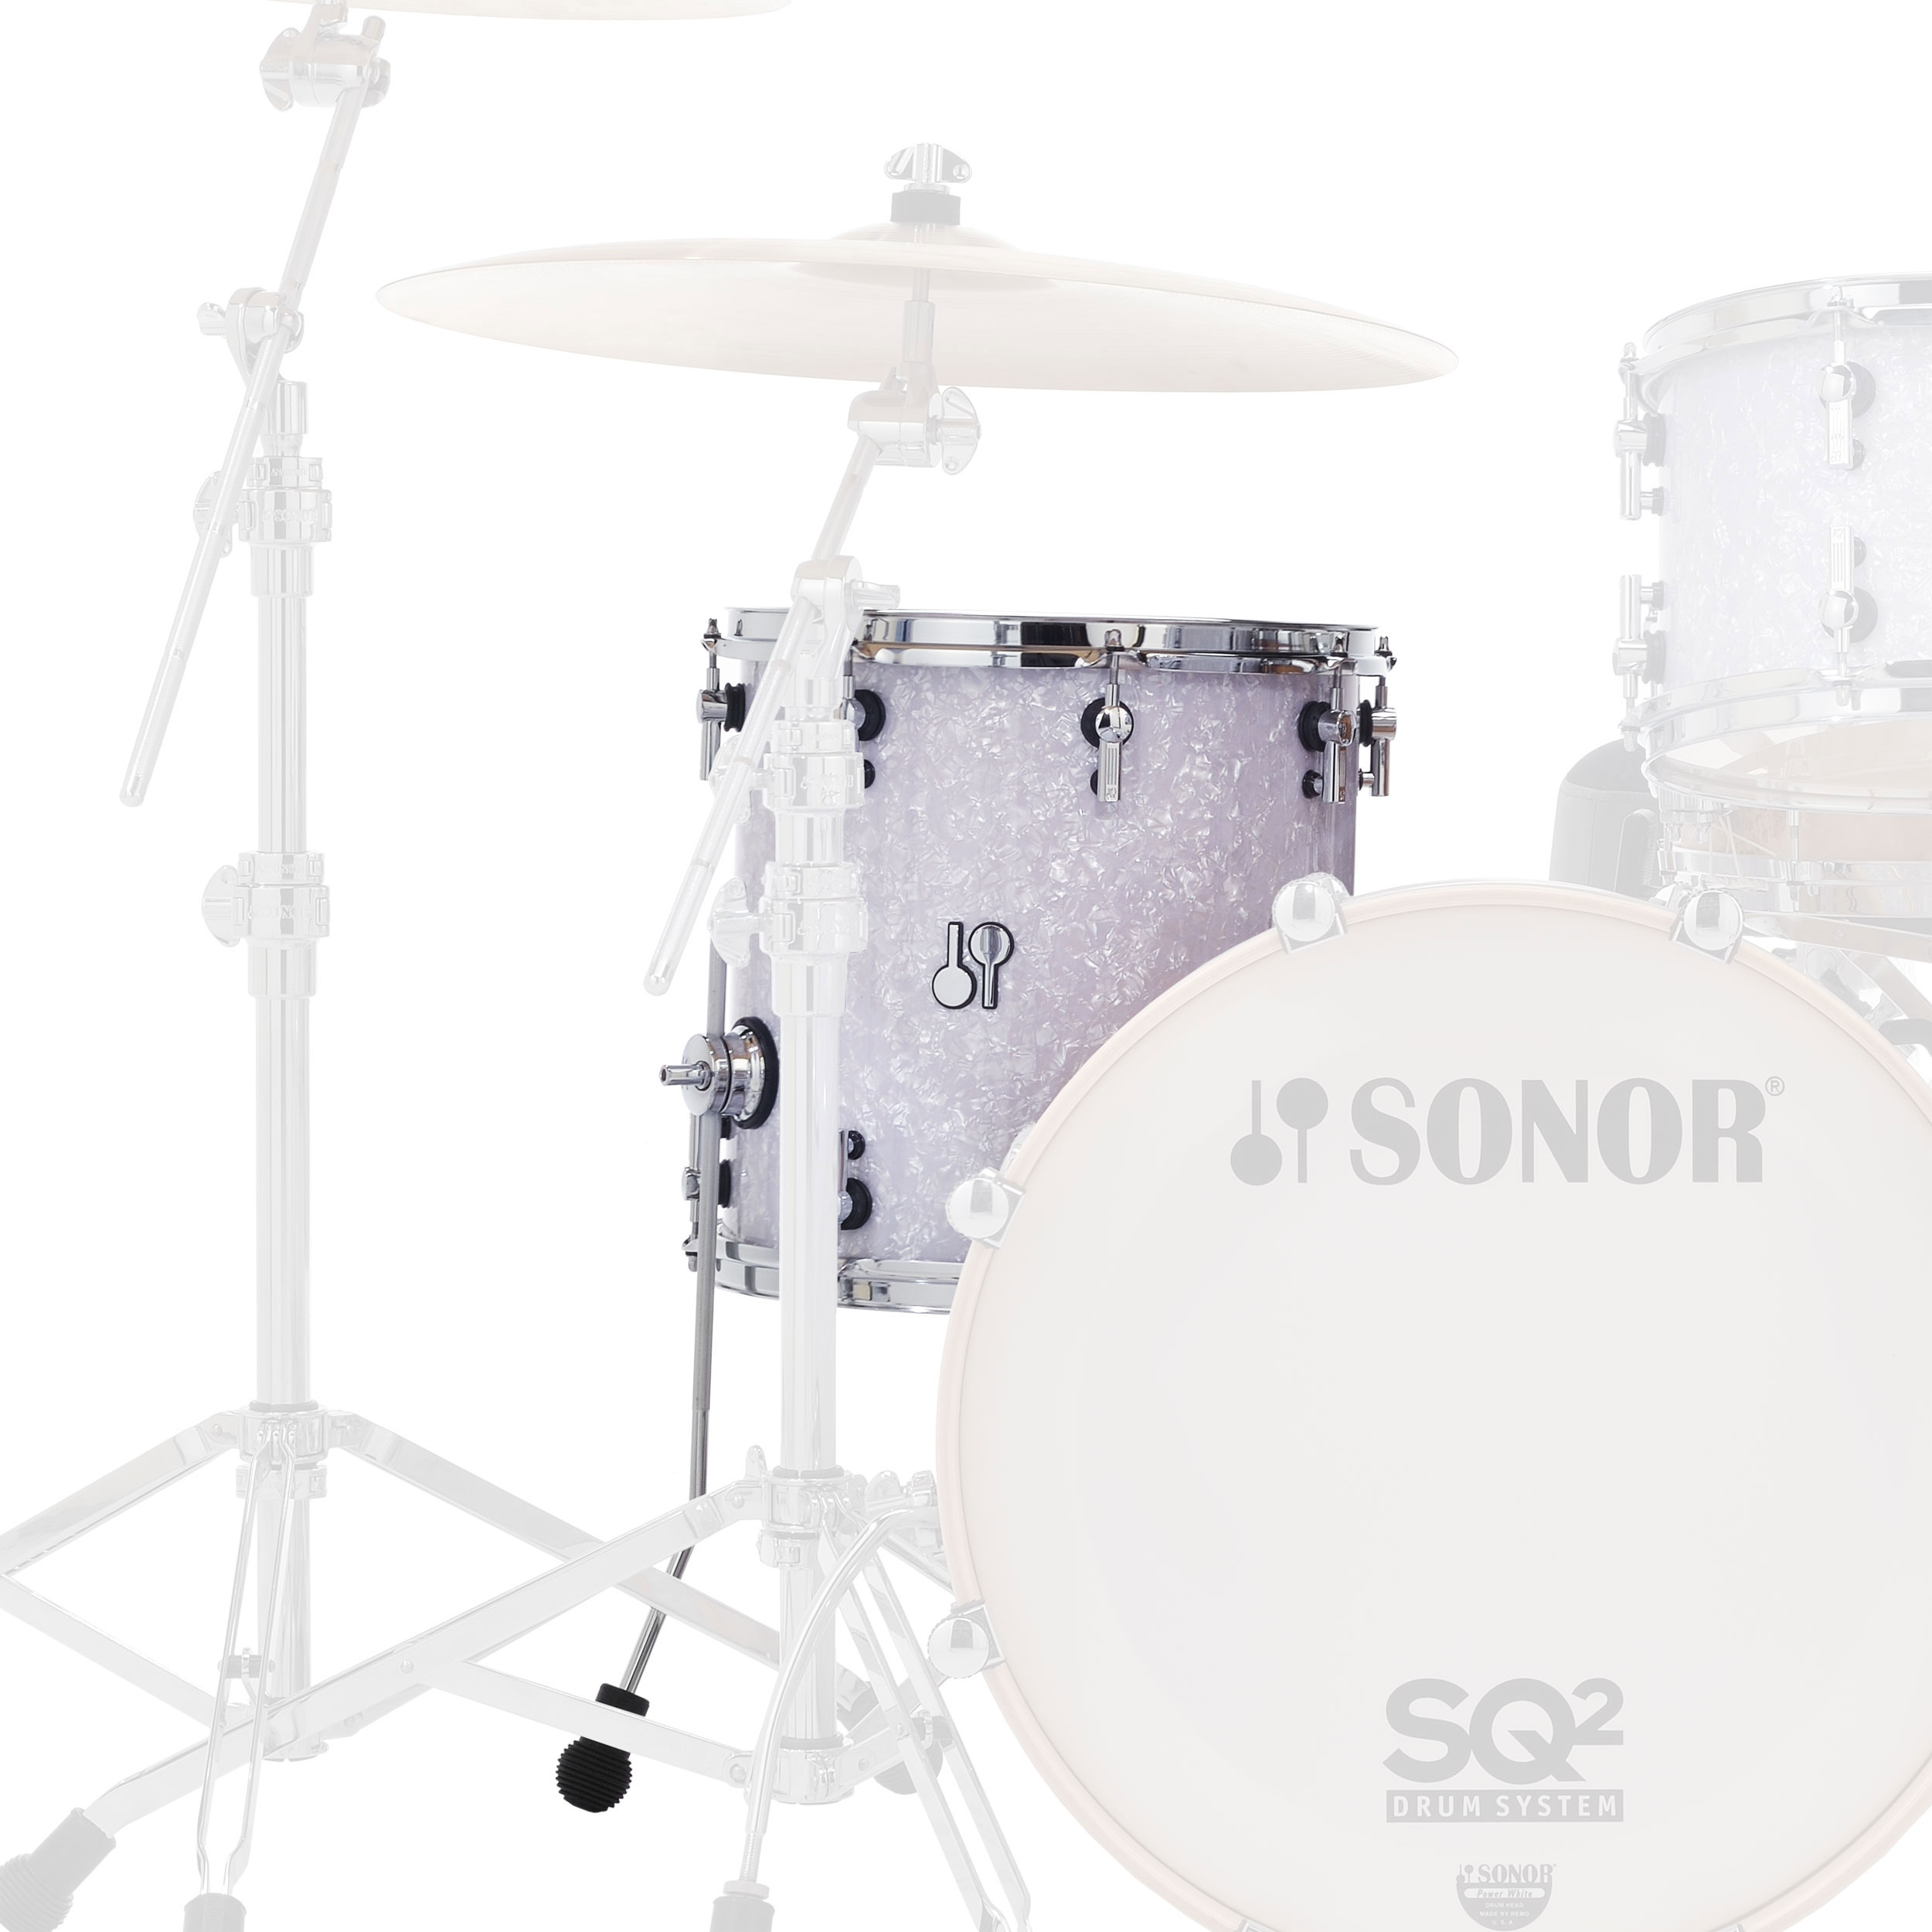 "Sonor 18"" (Diameter) x 17"" (Deep) SQ2 Vintage Maple Floor Tom"